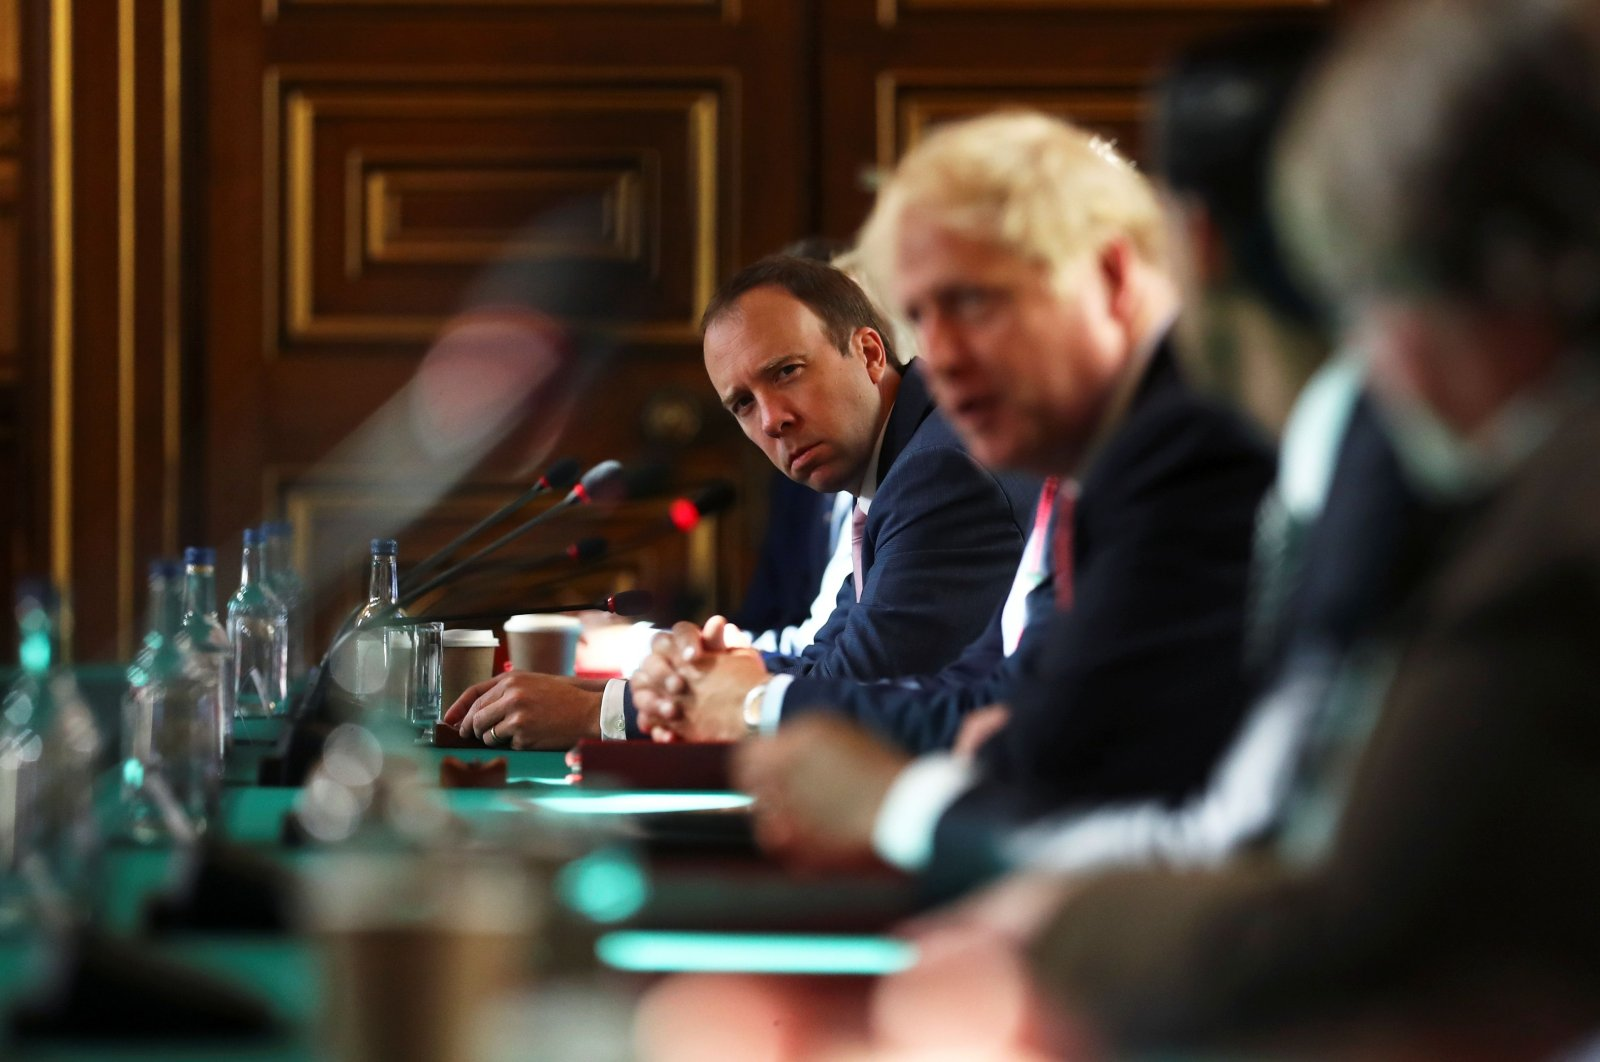 Britain's Health Secretary Matt Hancock (L) and Prime Minister Boris Johnson participate in the first face-to-face meeting of the Cabinet since mid-March because of the coronavirus pandemic, London, July 21, 2020. (AFP Photo)